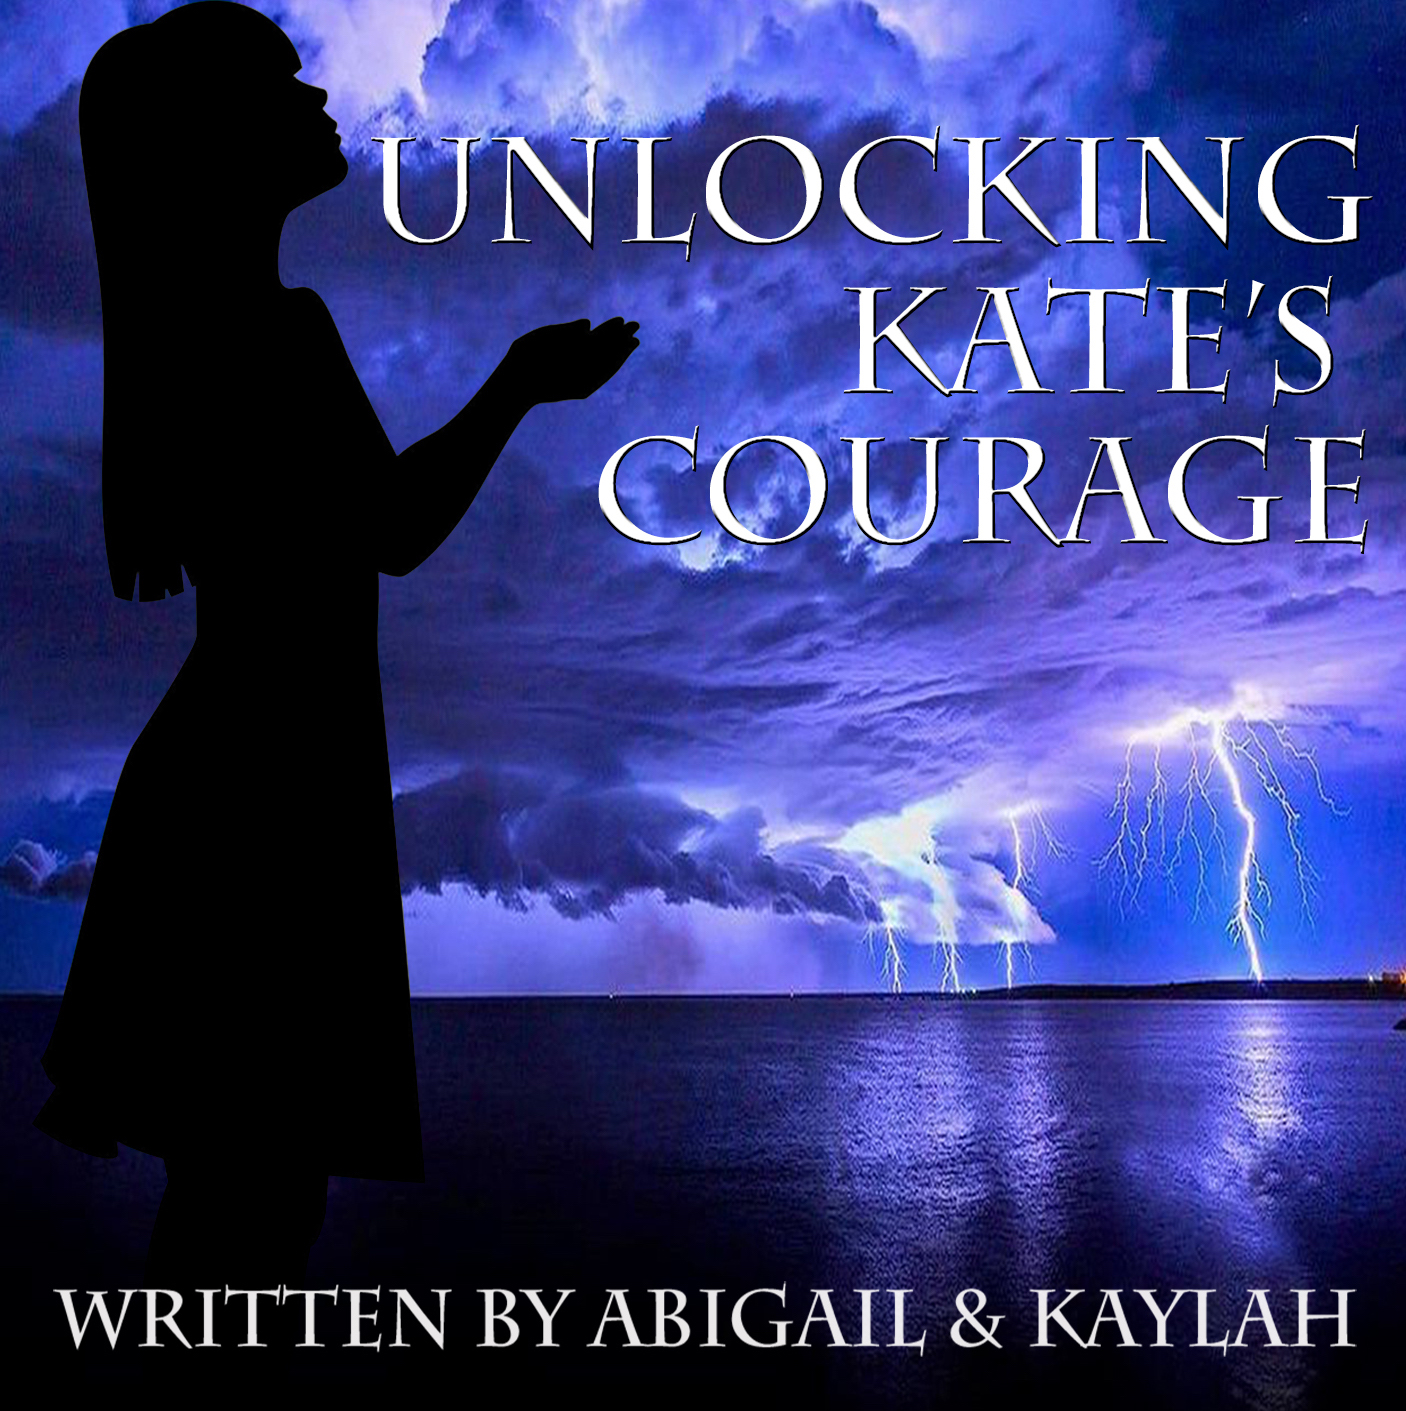 Unlocking-Kates-Courage